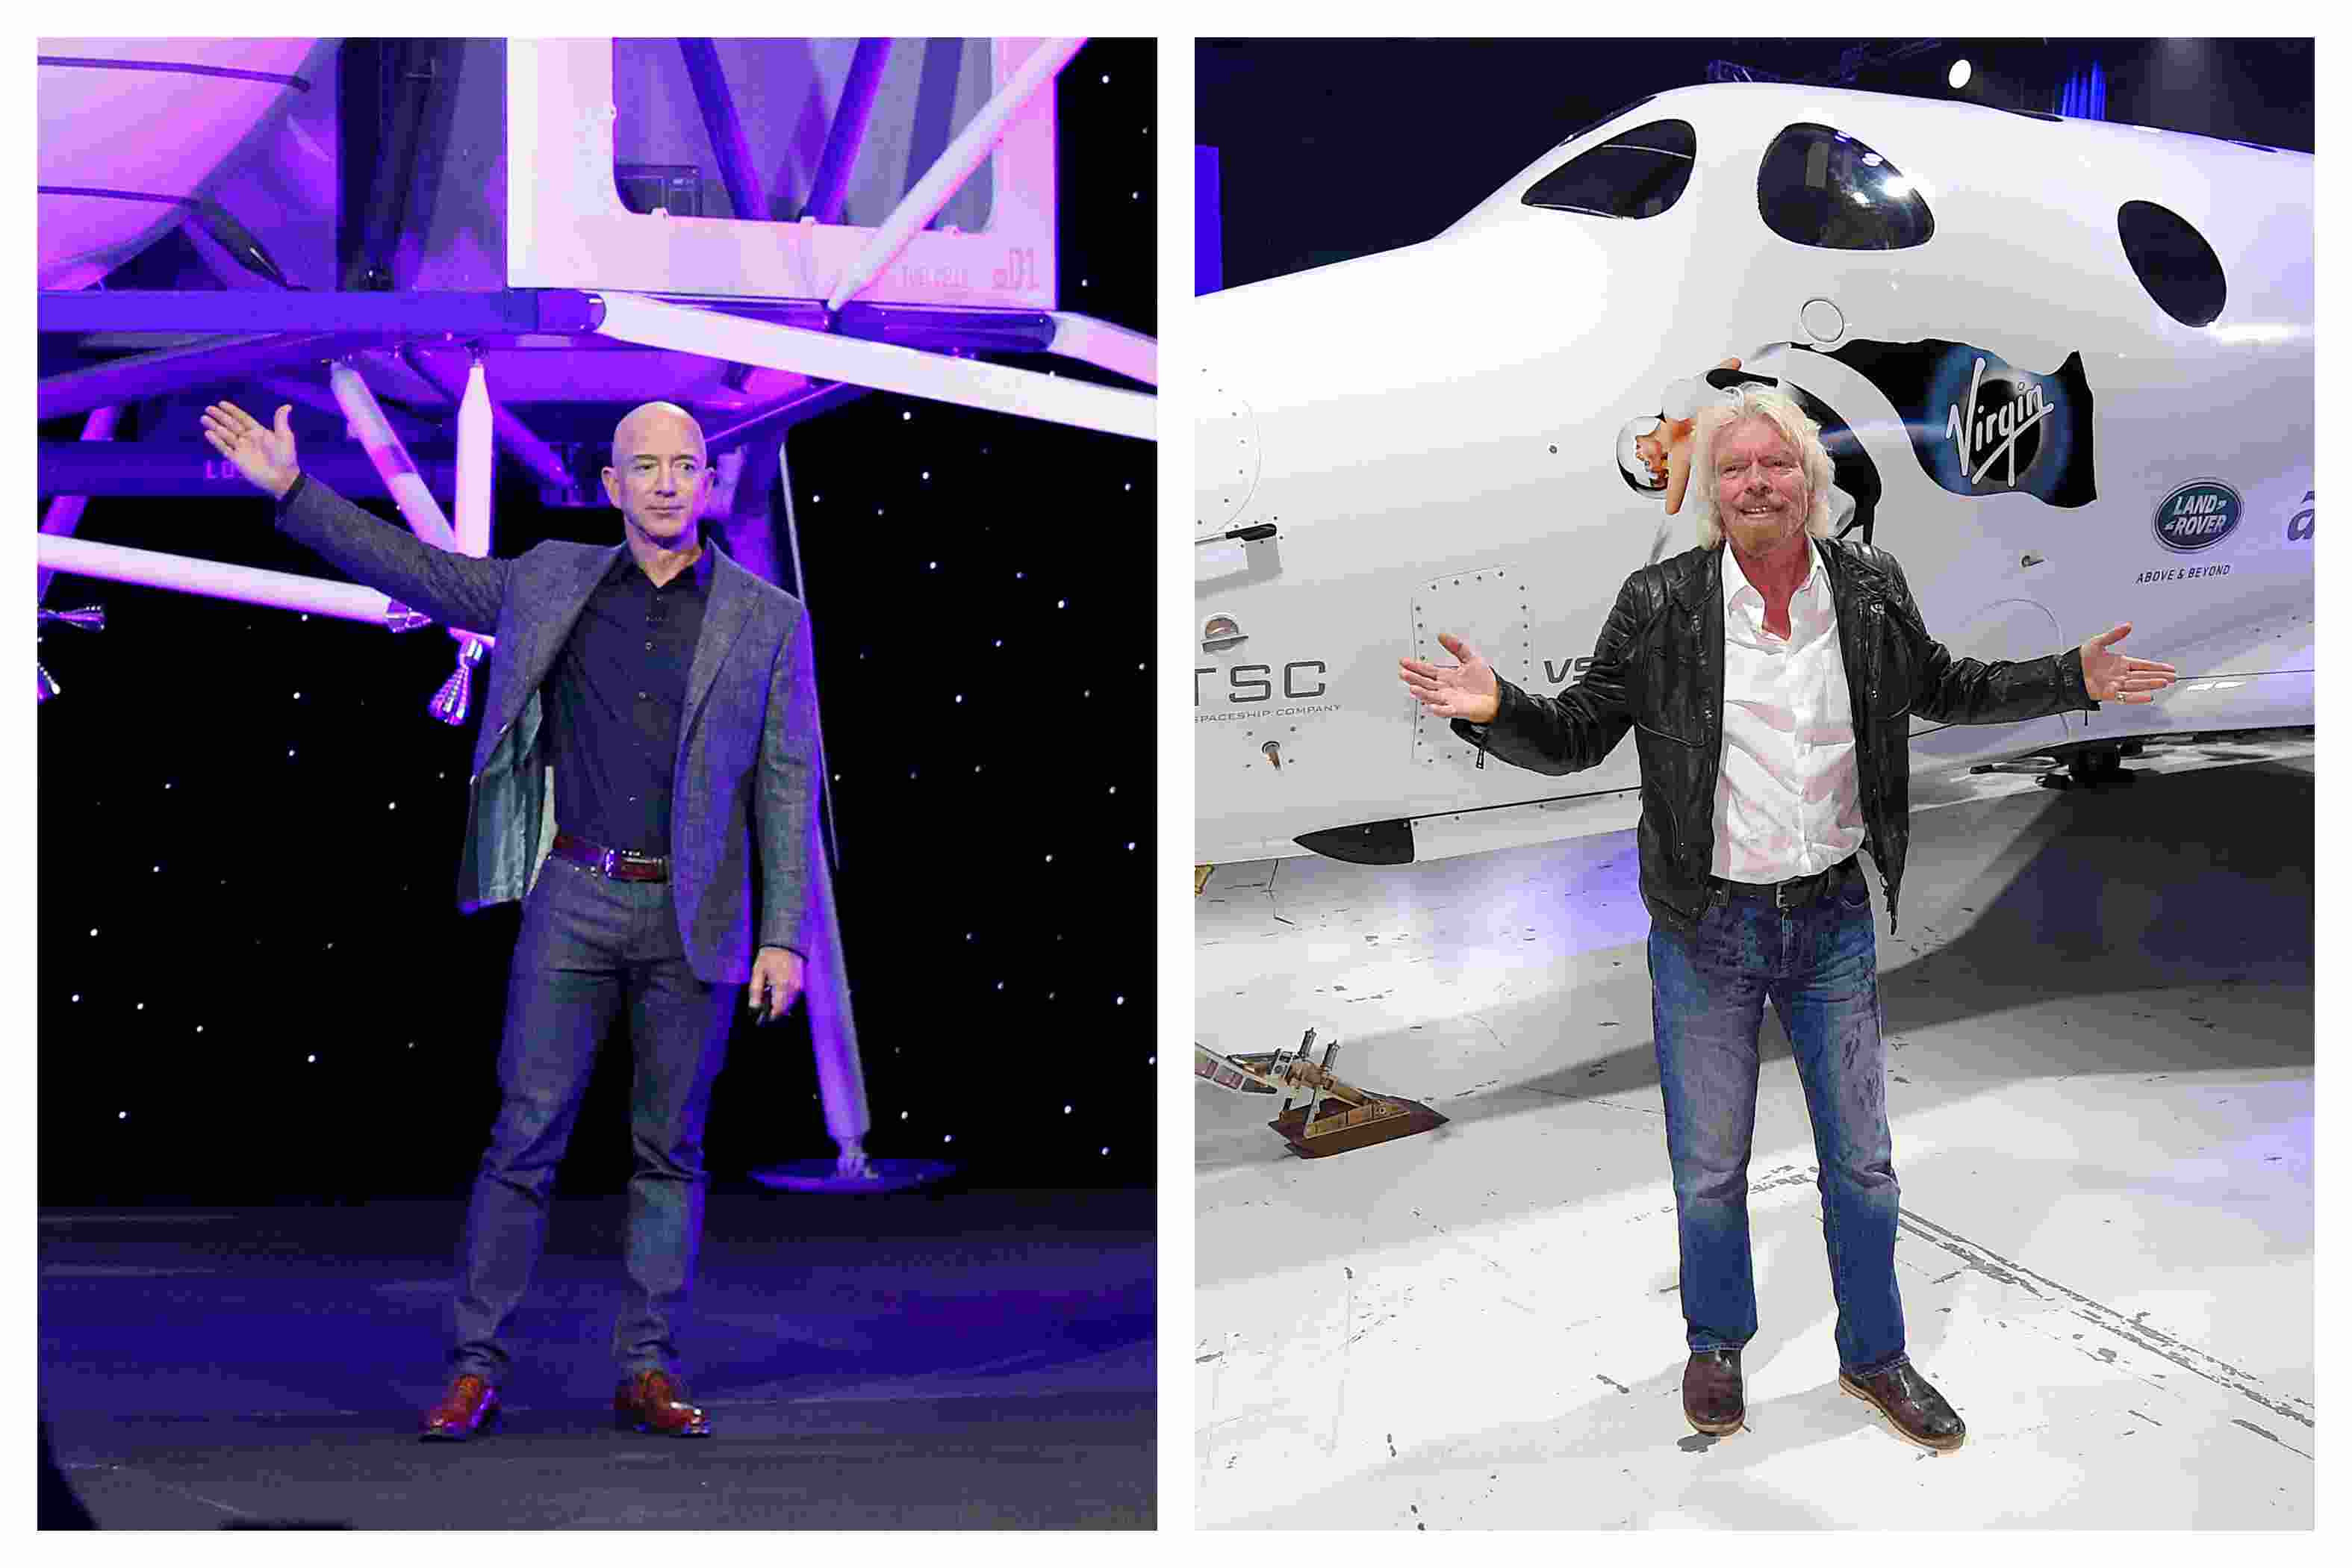 Billionaires Jeff Bezos and Richard Branson are competeing in a space race to be the first to go to space. Image credit: AP Photo/Mark J. Terrill